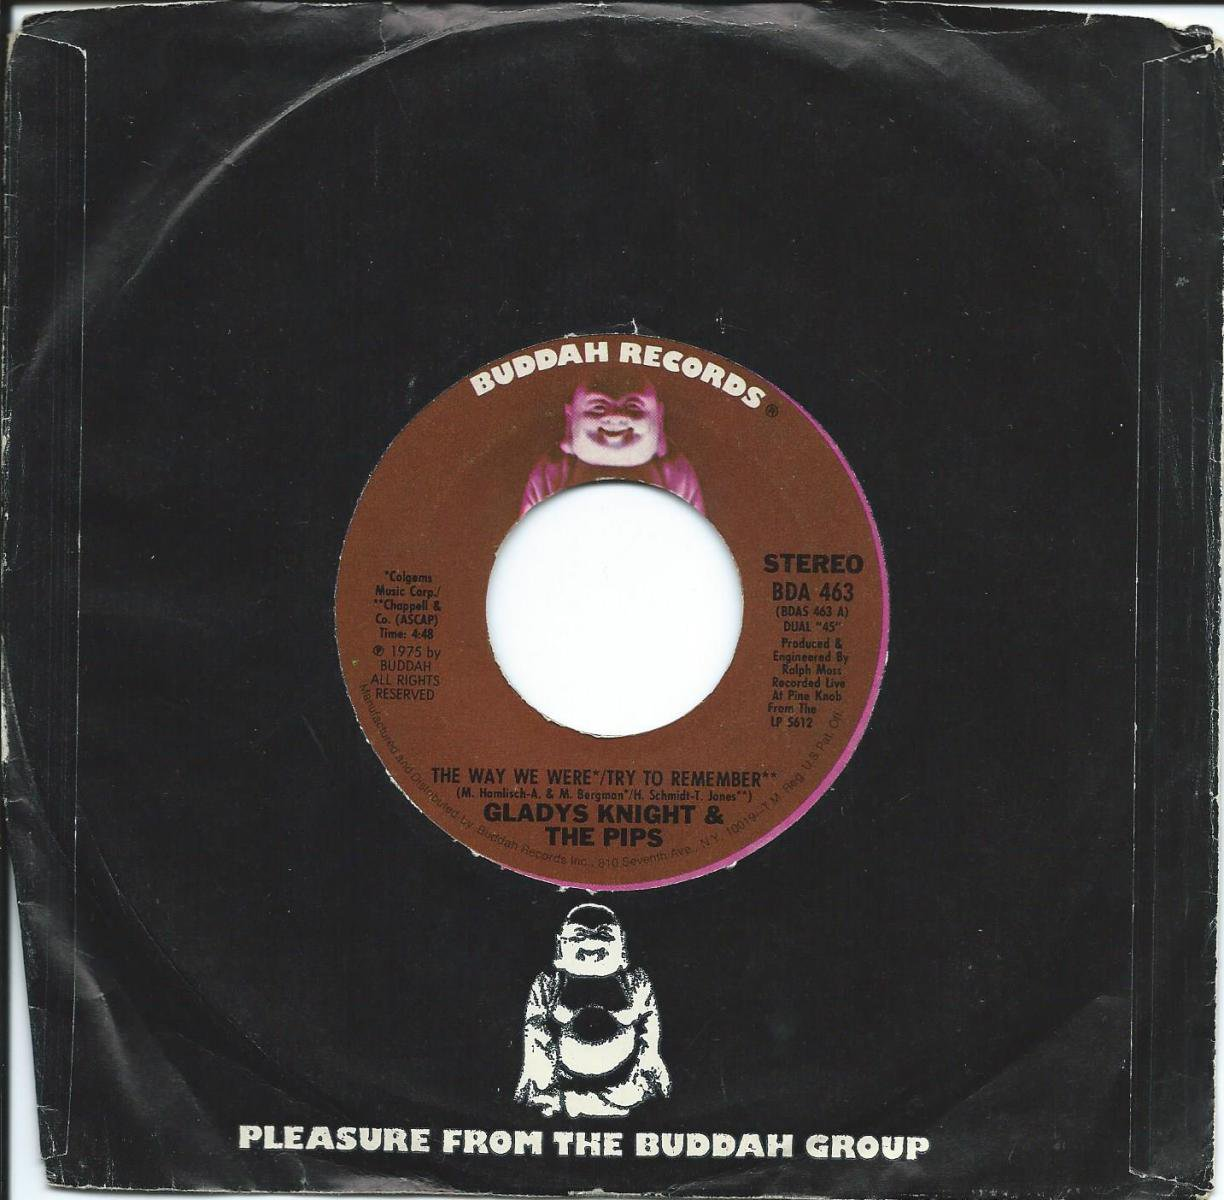 GLADYS KNIGHT & THE PIPS / THE WAY WE WERE / TRY TO REMEMBER (7